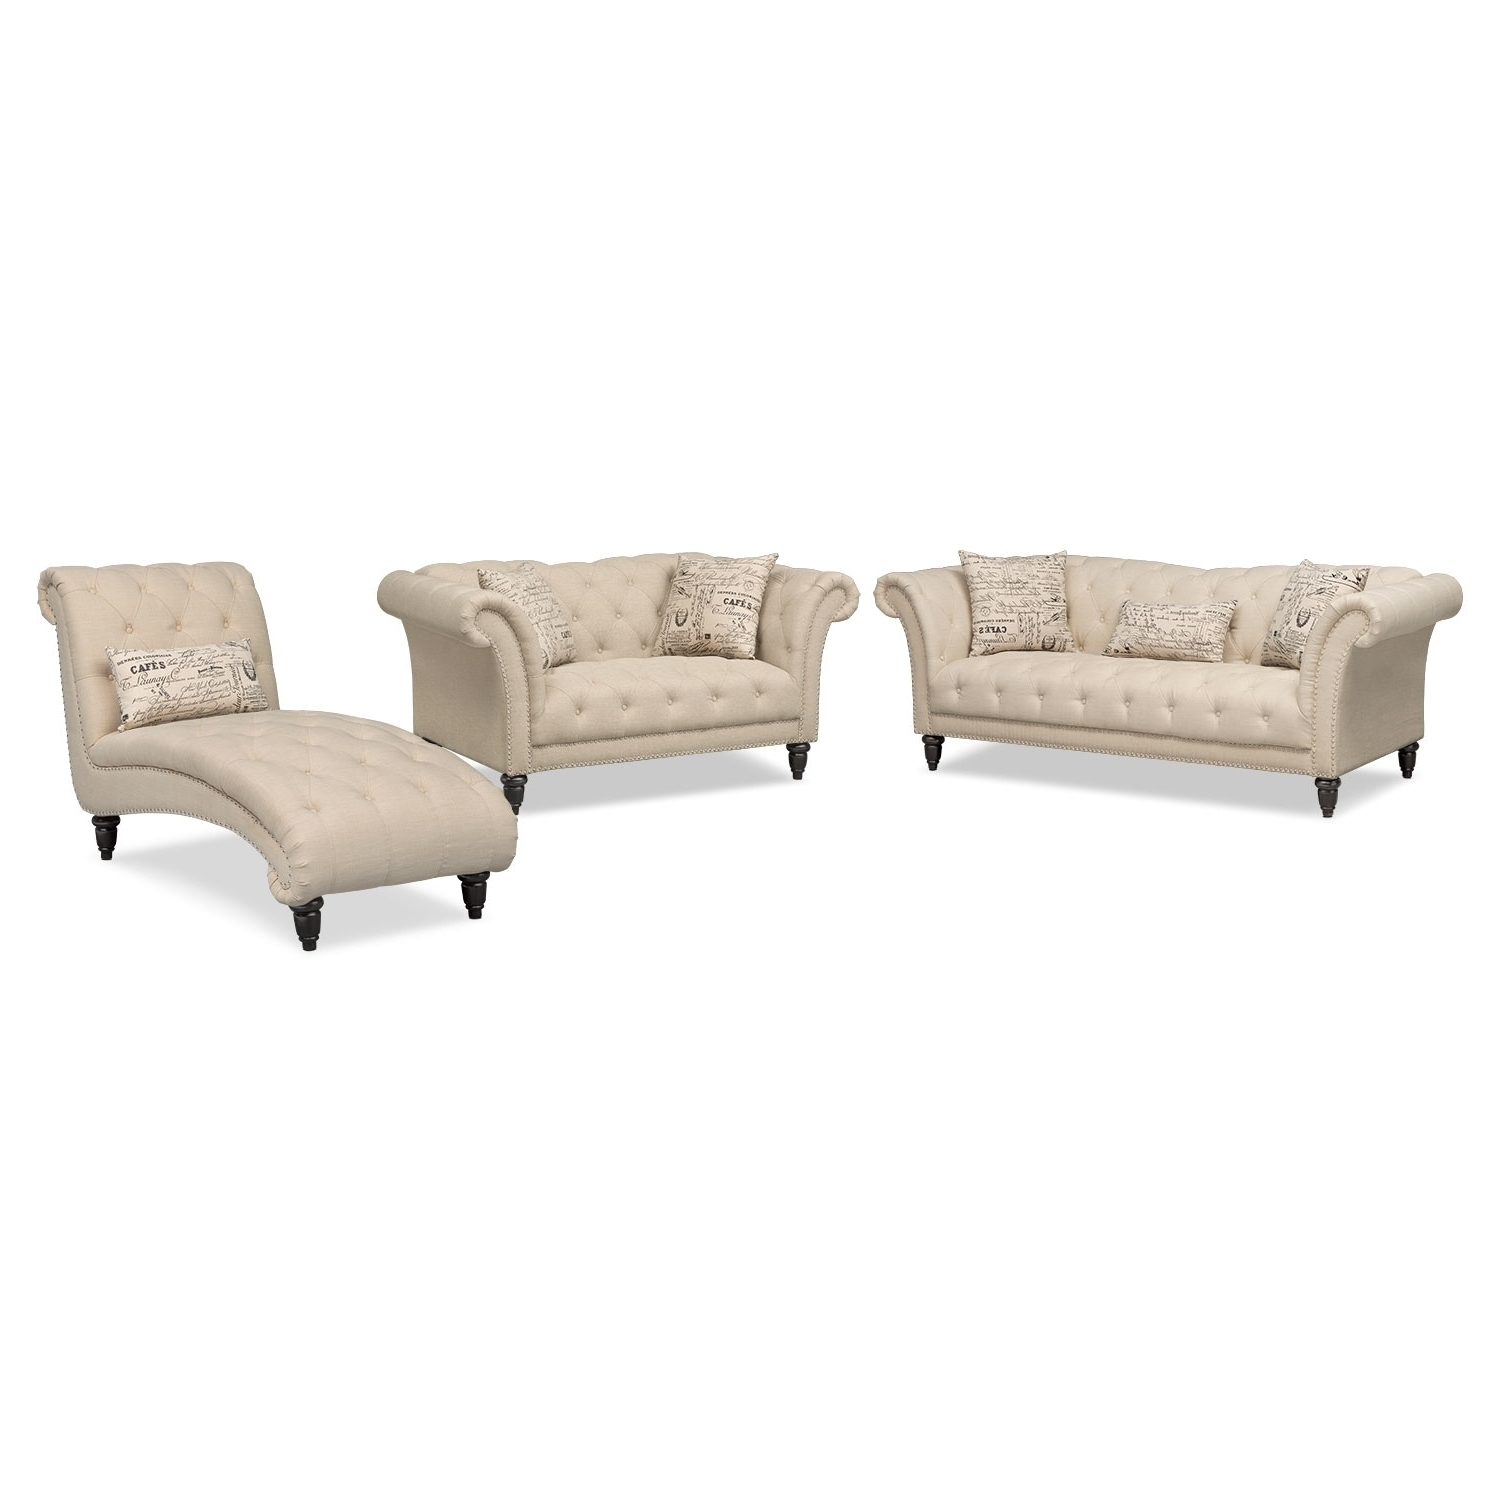 Newest Marisol Sofa, Loveseat And Chaise Set – Beige (View 3 of 15)